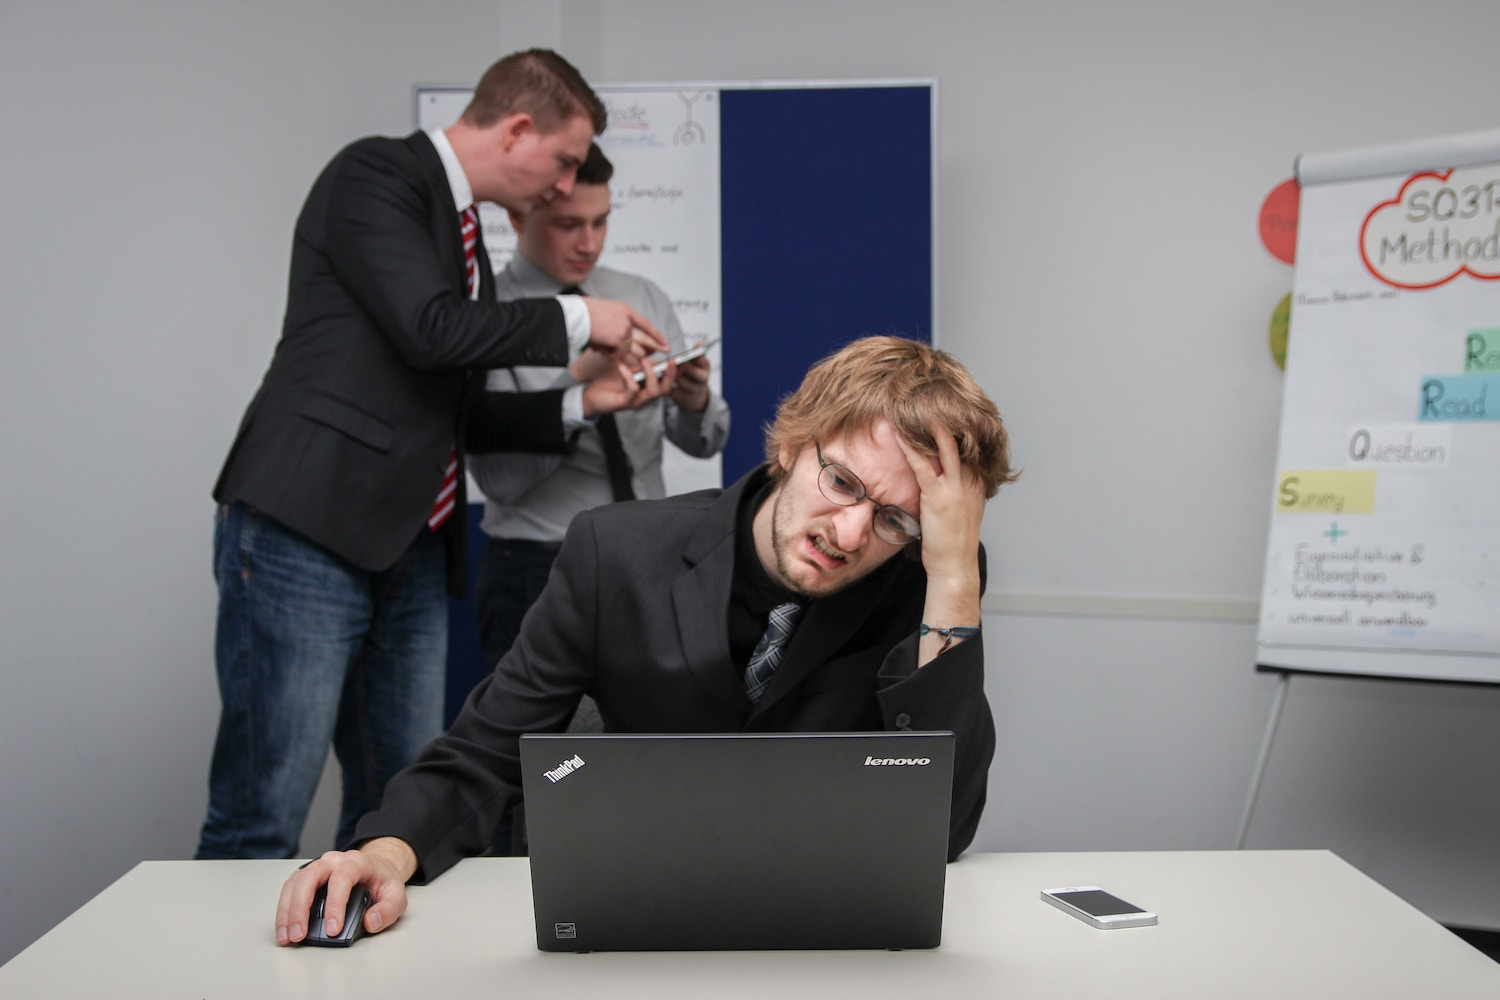 Man hands on head looking stressed in office